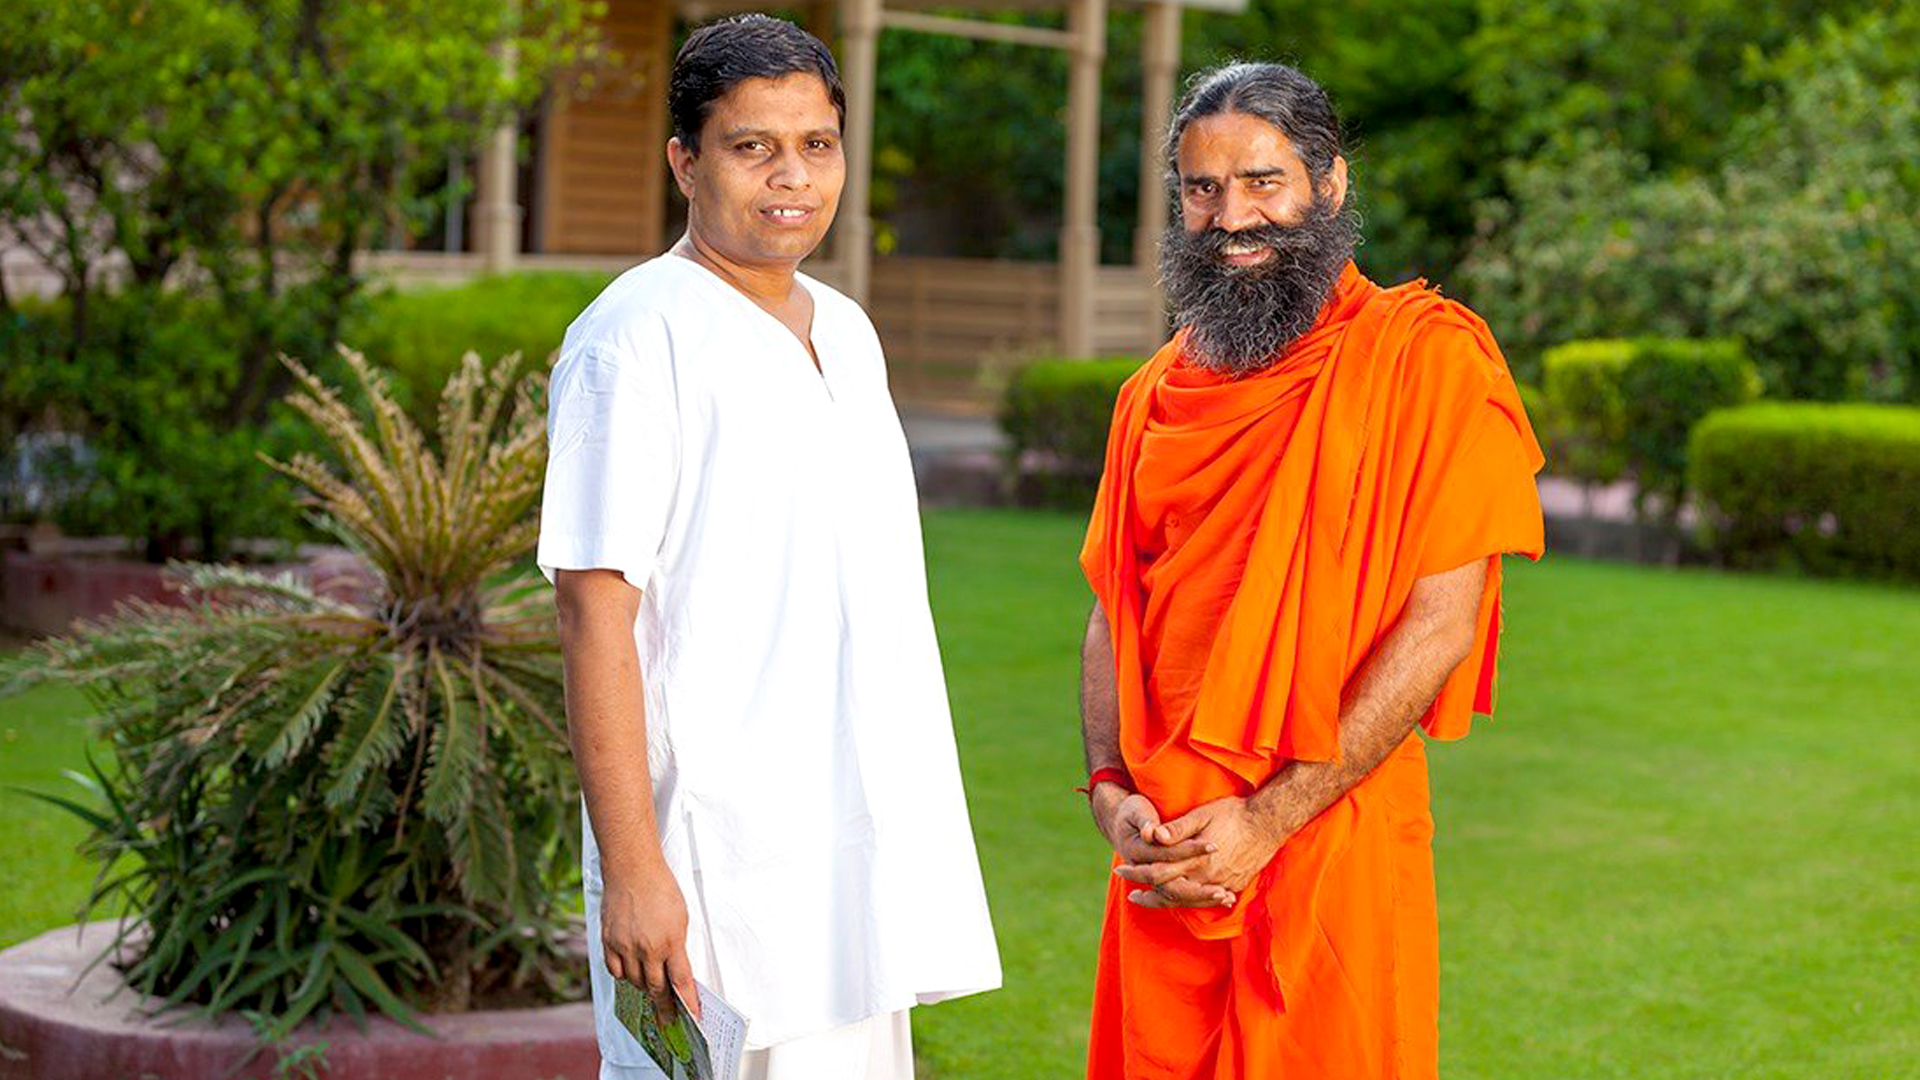 Indian Yoga Magnate Comes Back With 'Evidence' Of Covid-19 'Drug' - Zenger News